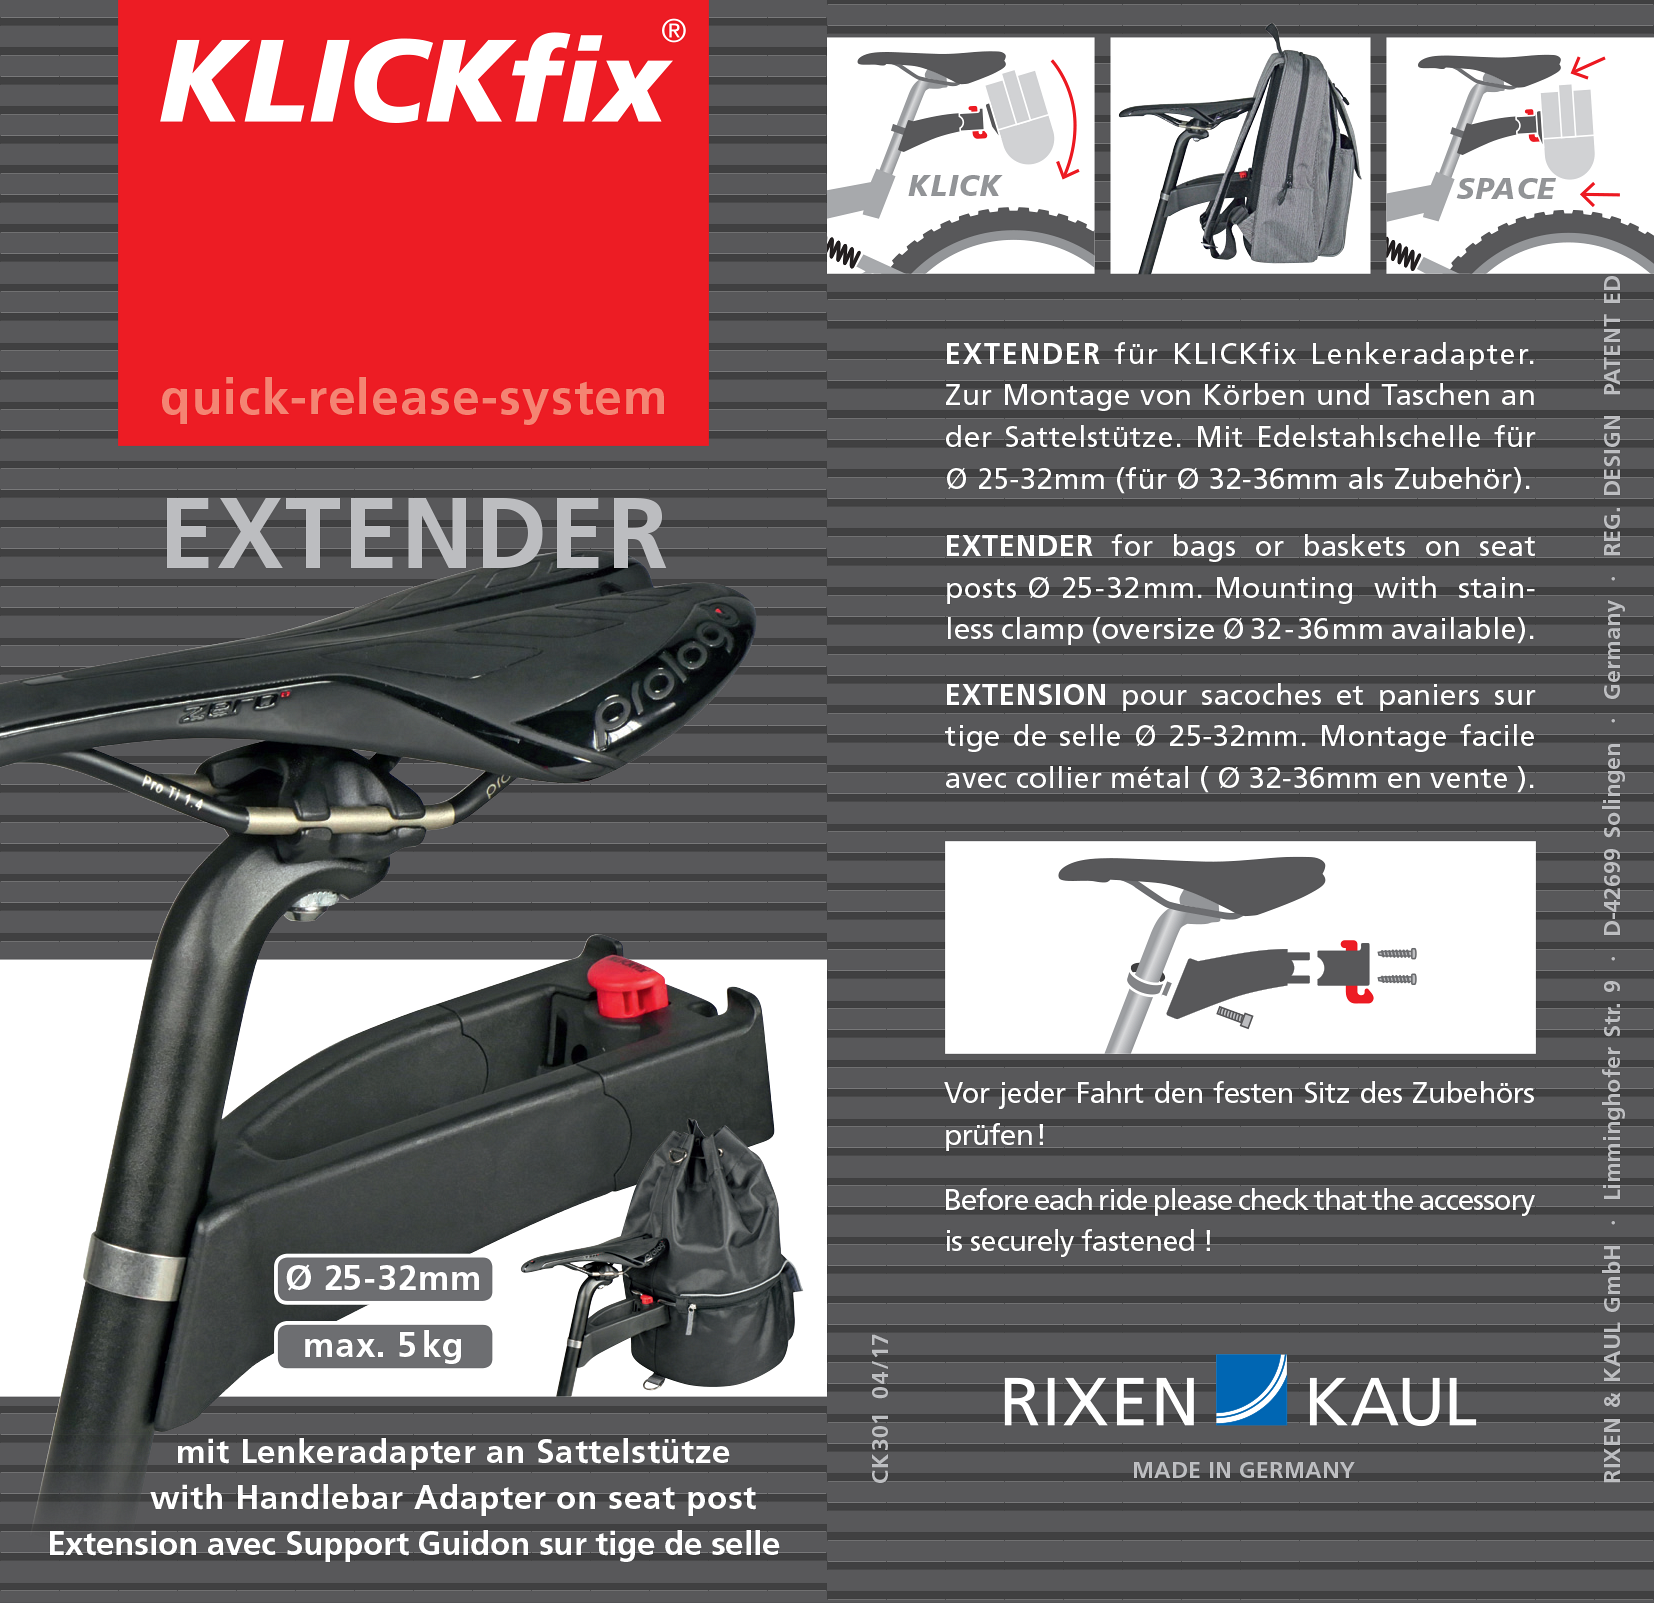 Seatpost d:25-32mm 0217.. Rixen /& Kaul KLICKfix Saddle Base Adapter Complete F